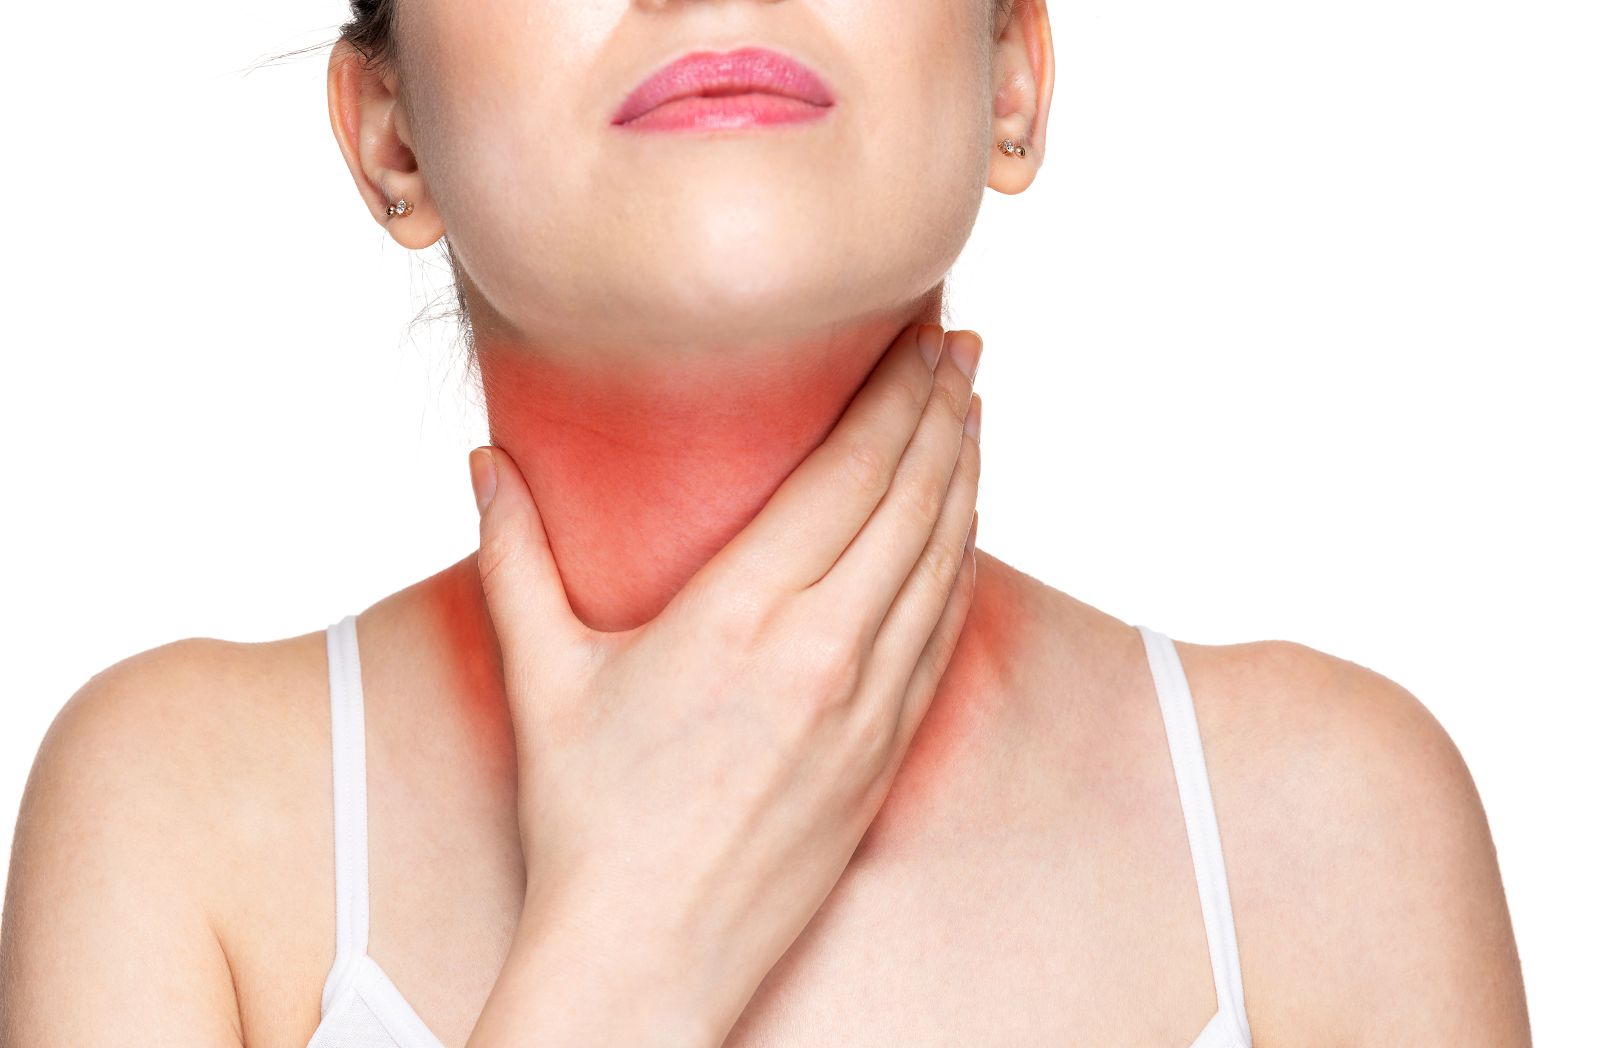 What to eat when you have a sore throat